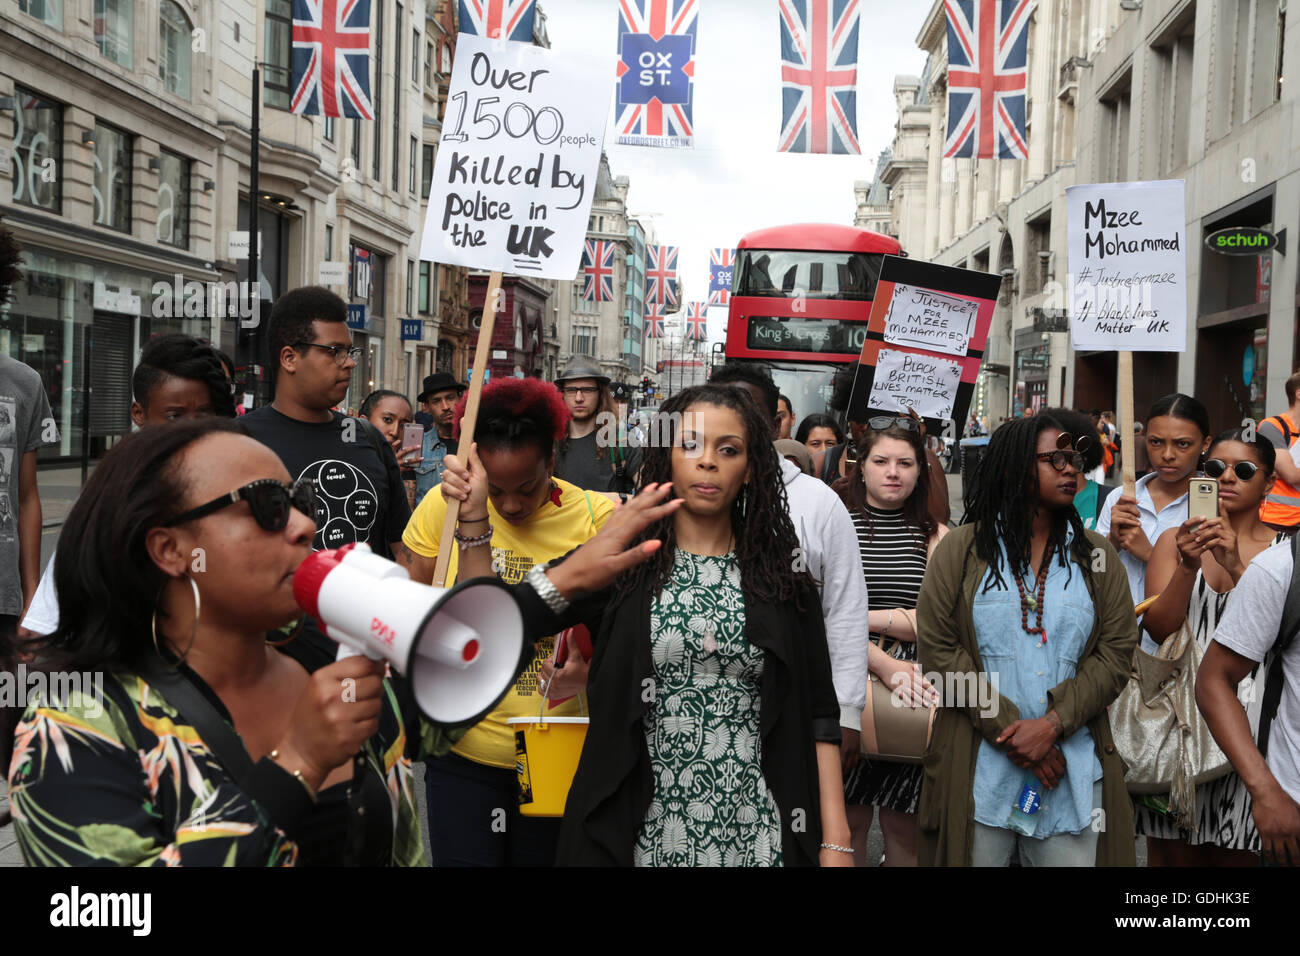 London, UK. 17th July, 2016. A family friend Ava Morgan (L) and supporters march from oxford circus to the offices - Stock Image